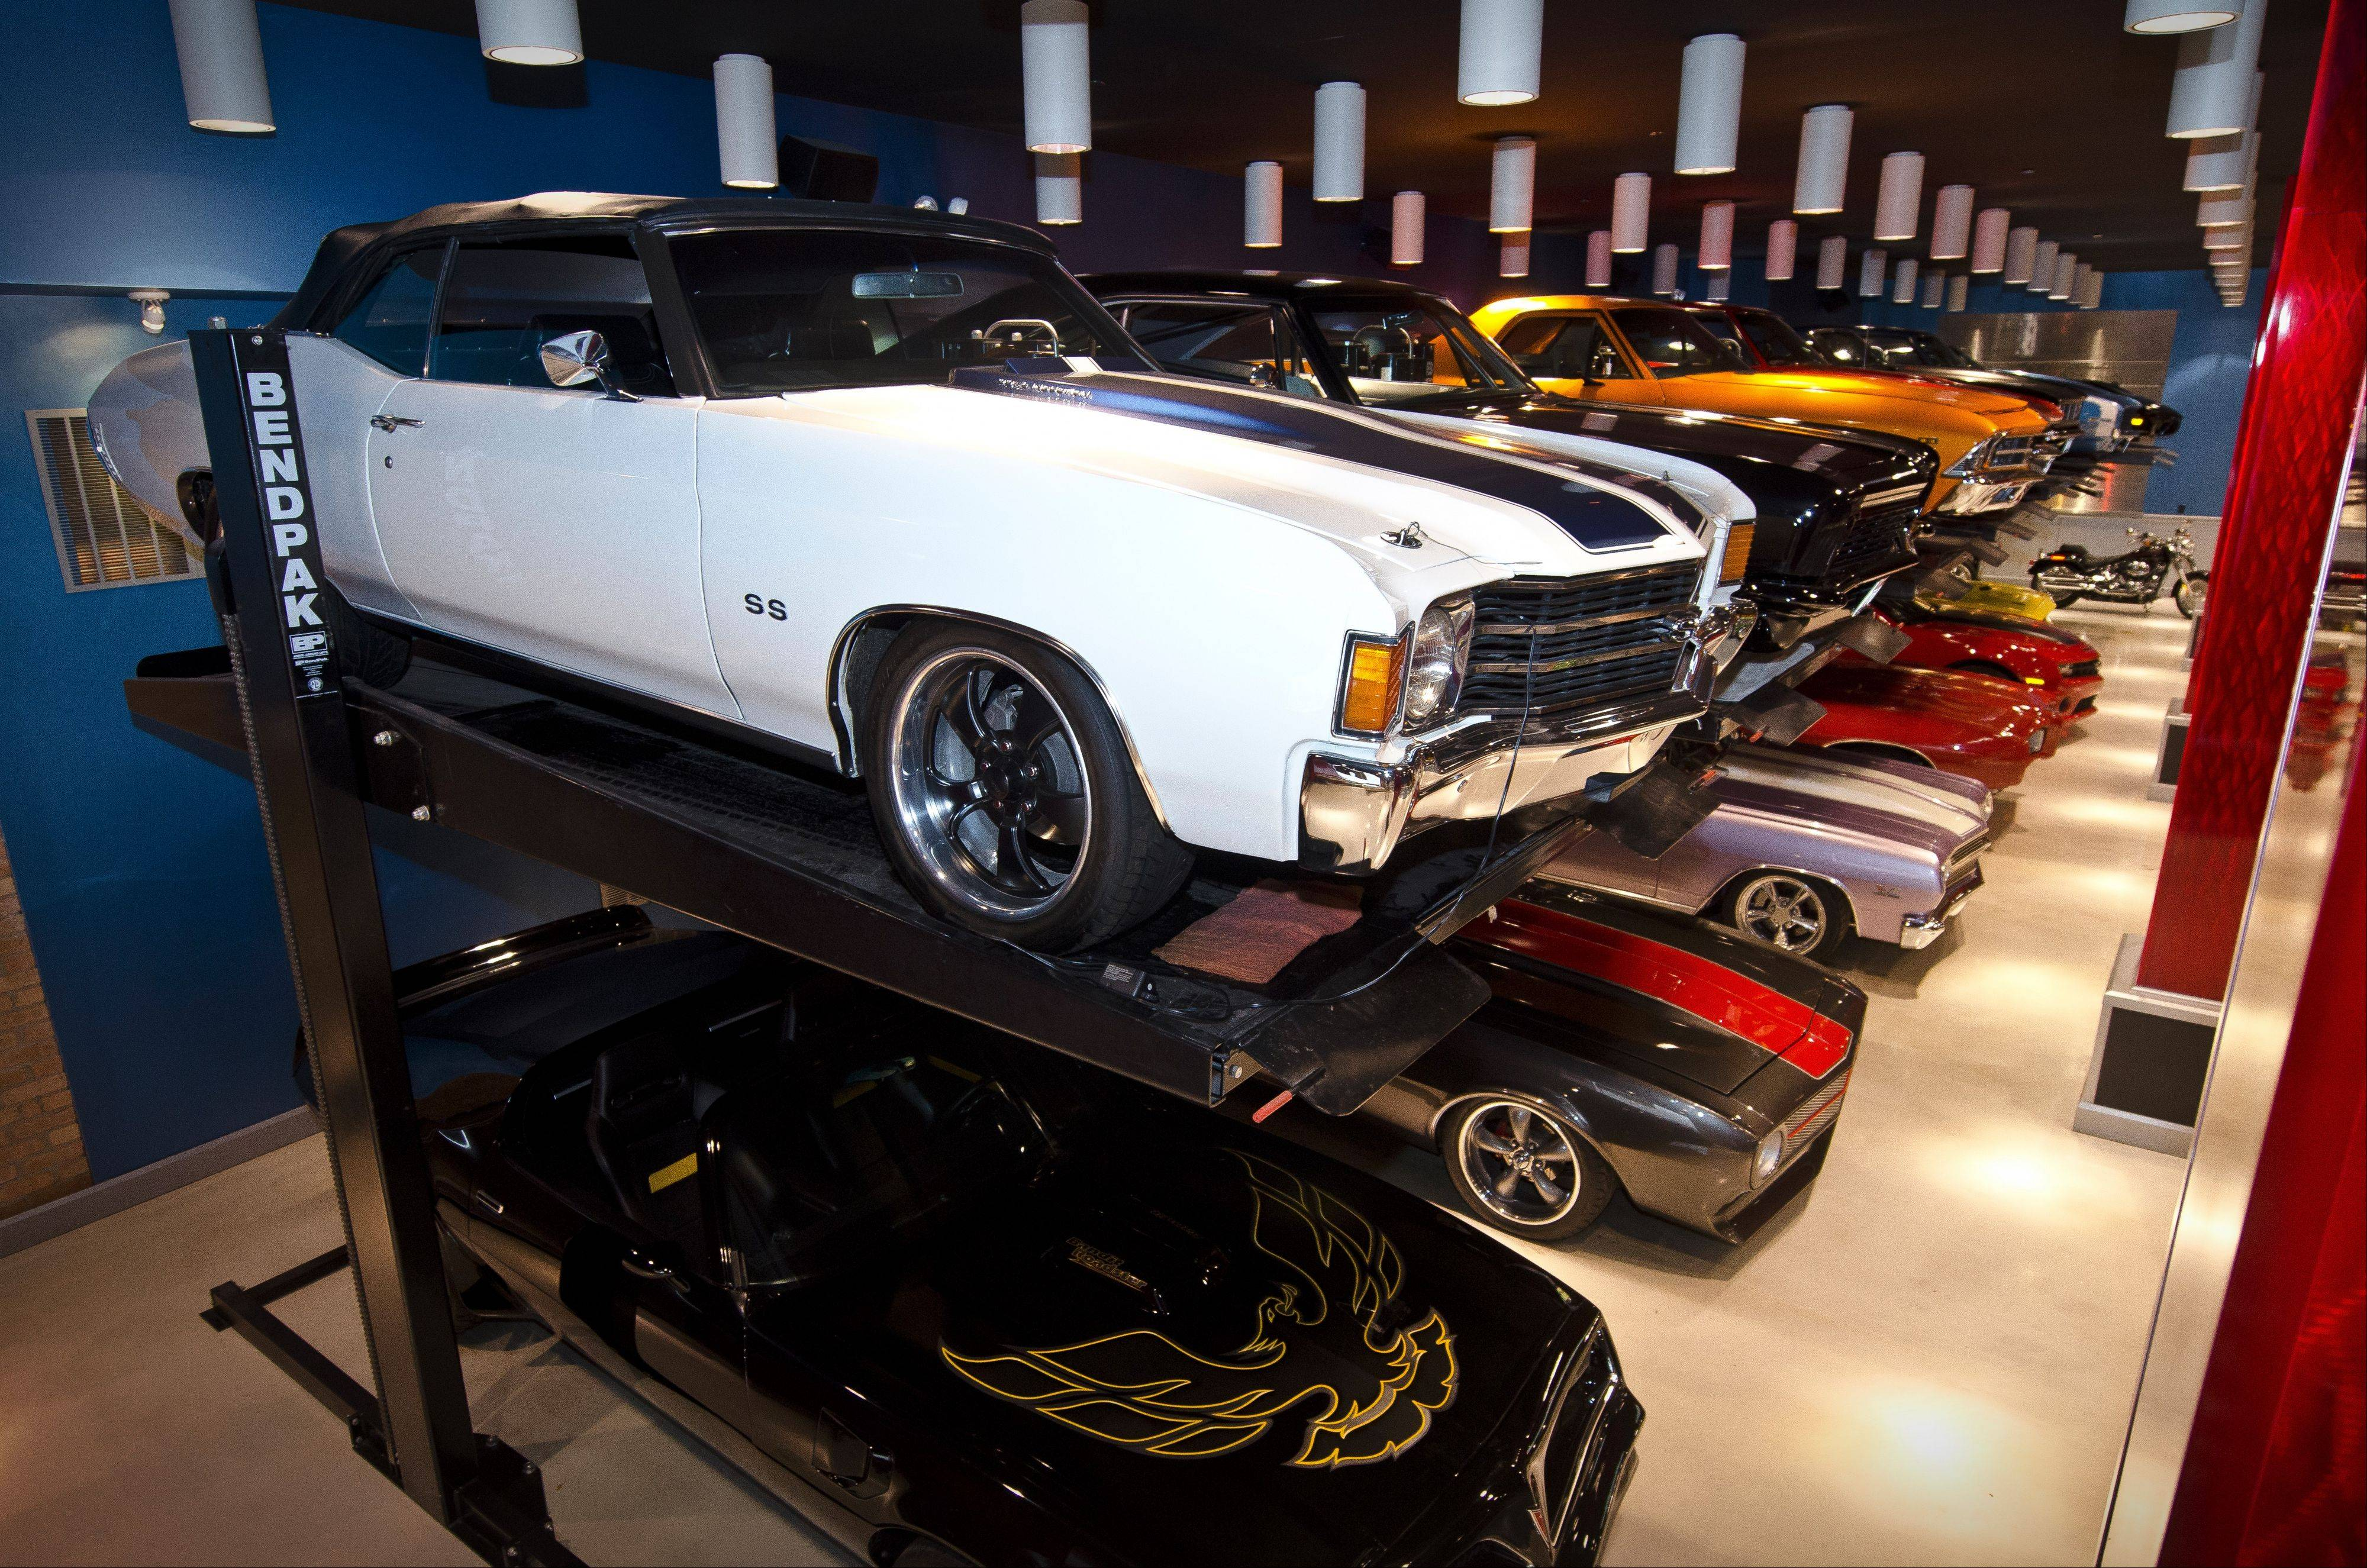 A series of car lifts allows Wisniewski to park and display more cars in his Vegas-themed showroom.